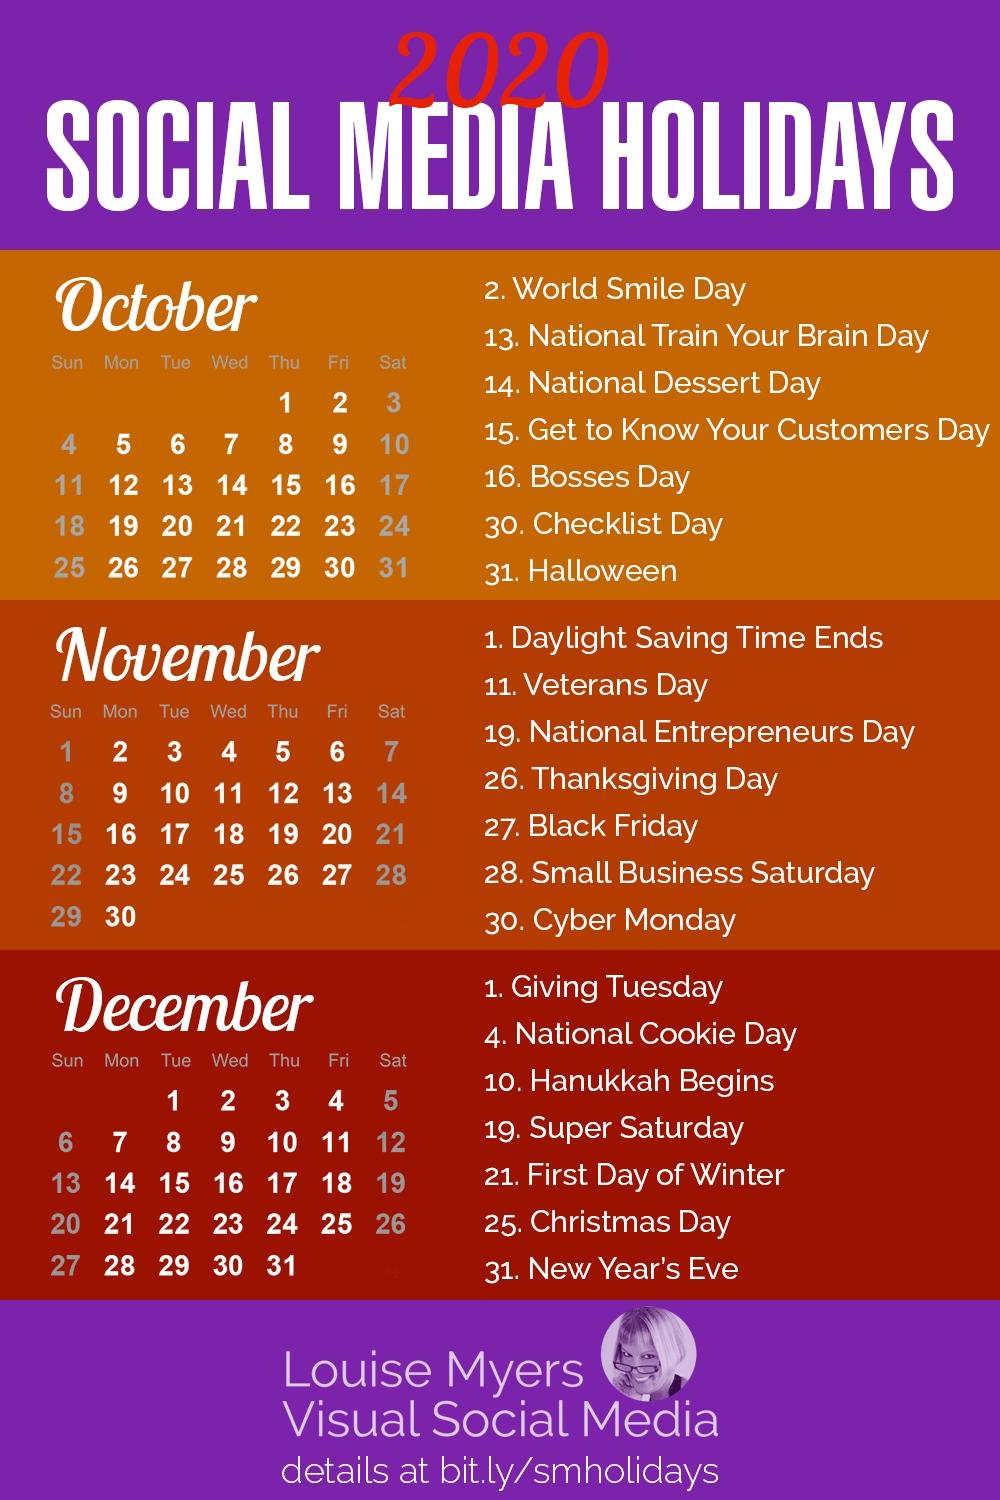 84 Social Media Holidays You Need In 2020: Indispensable!-September 2020 Daily Holidays Special And Wacky Days